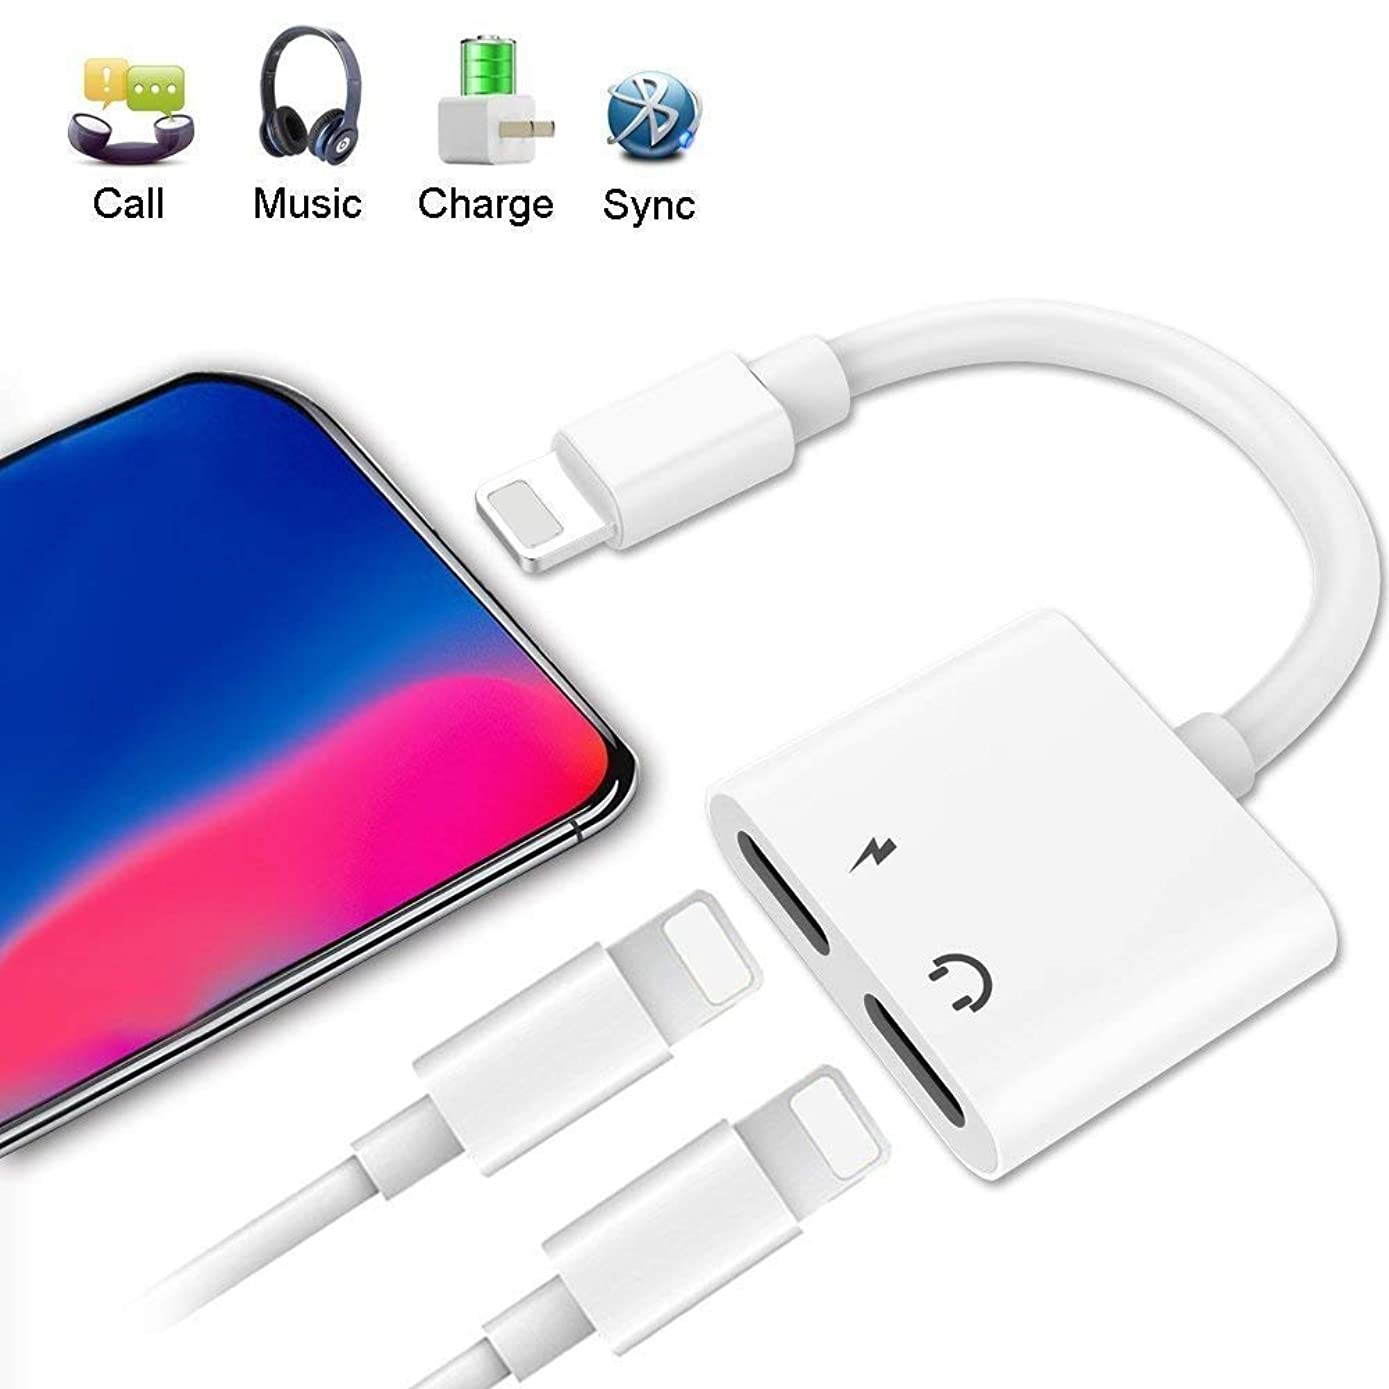 Lighting Splitter Adapter, 2-in-1 Dual Lighting Headphone Audio and Charge Adapter, Compatible Phone 7/8 / X/XS/XR/XS MAX.(Compatible iOS 11, iOS 12 White)